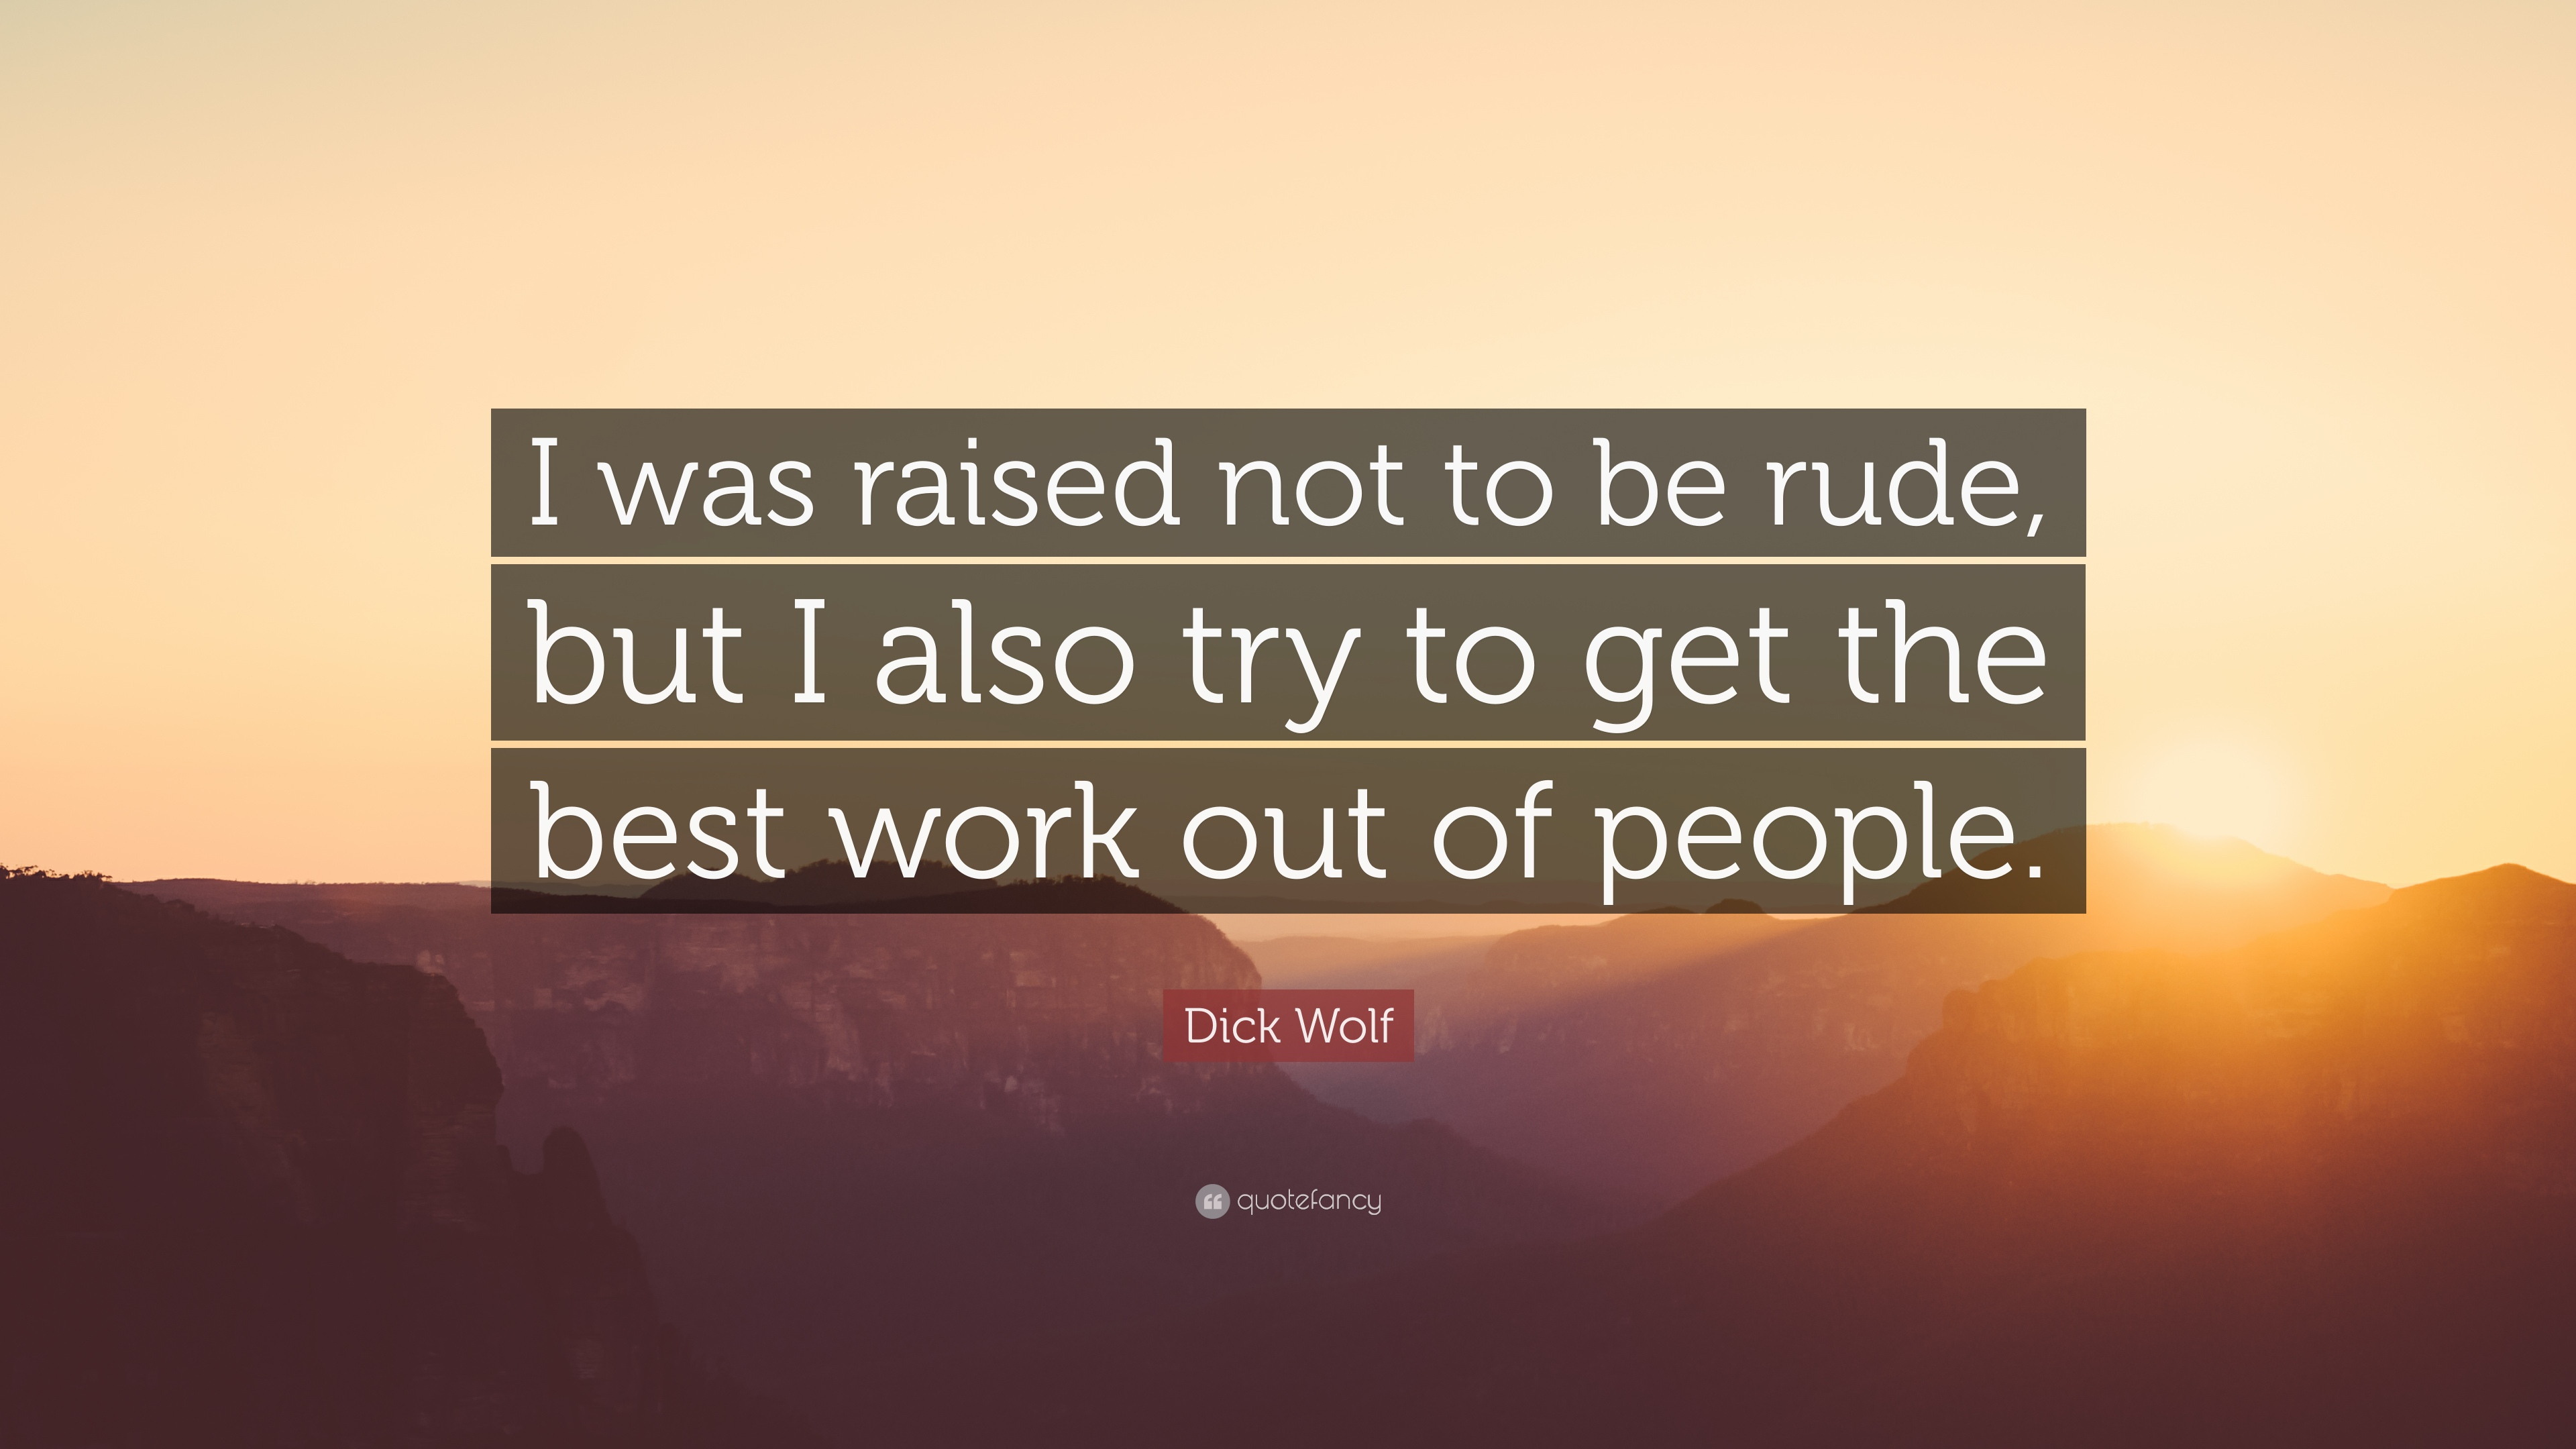 Dick Wolf Quote I Was Raised Not To Be Rude But I Also Try To Get